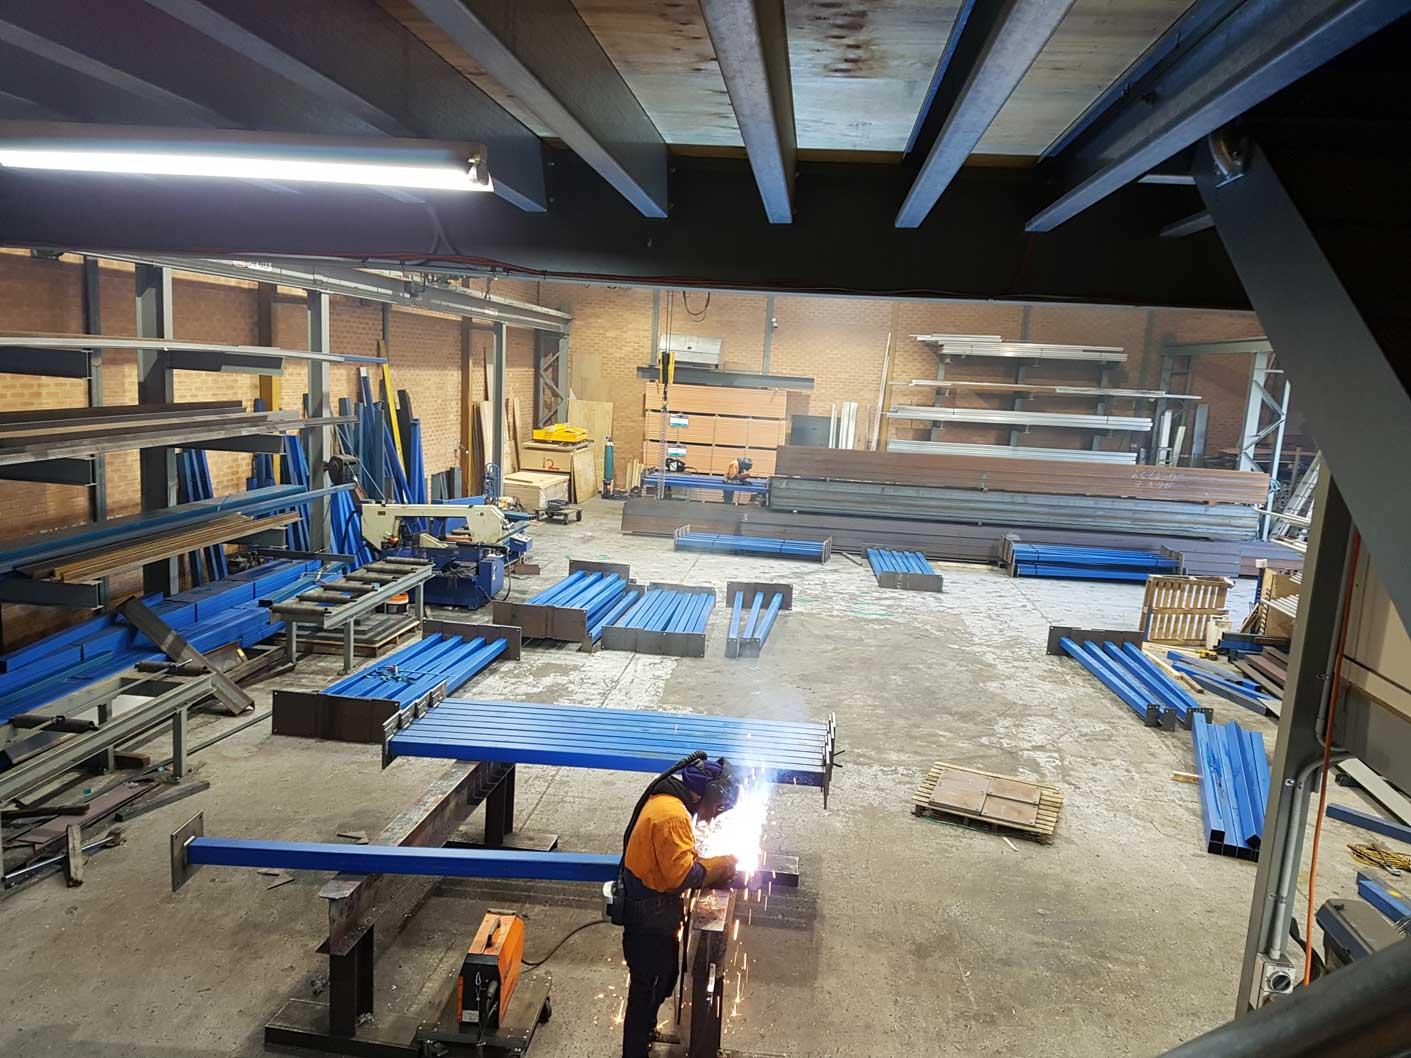 Mezzanine Floor Specialist workshop